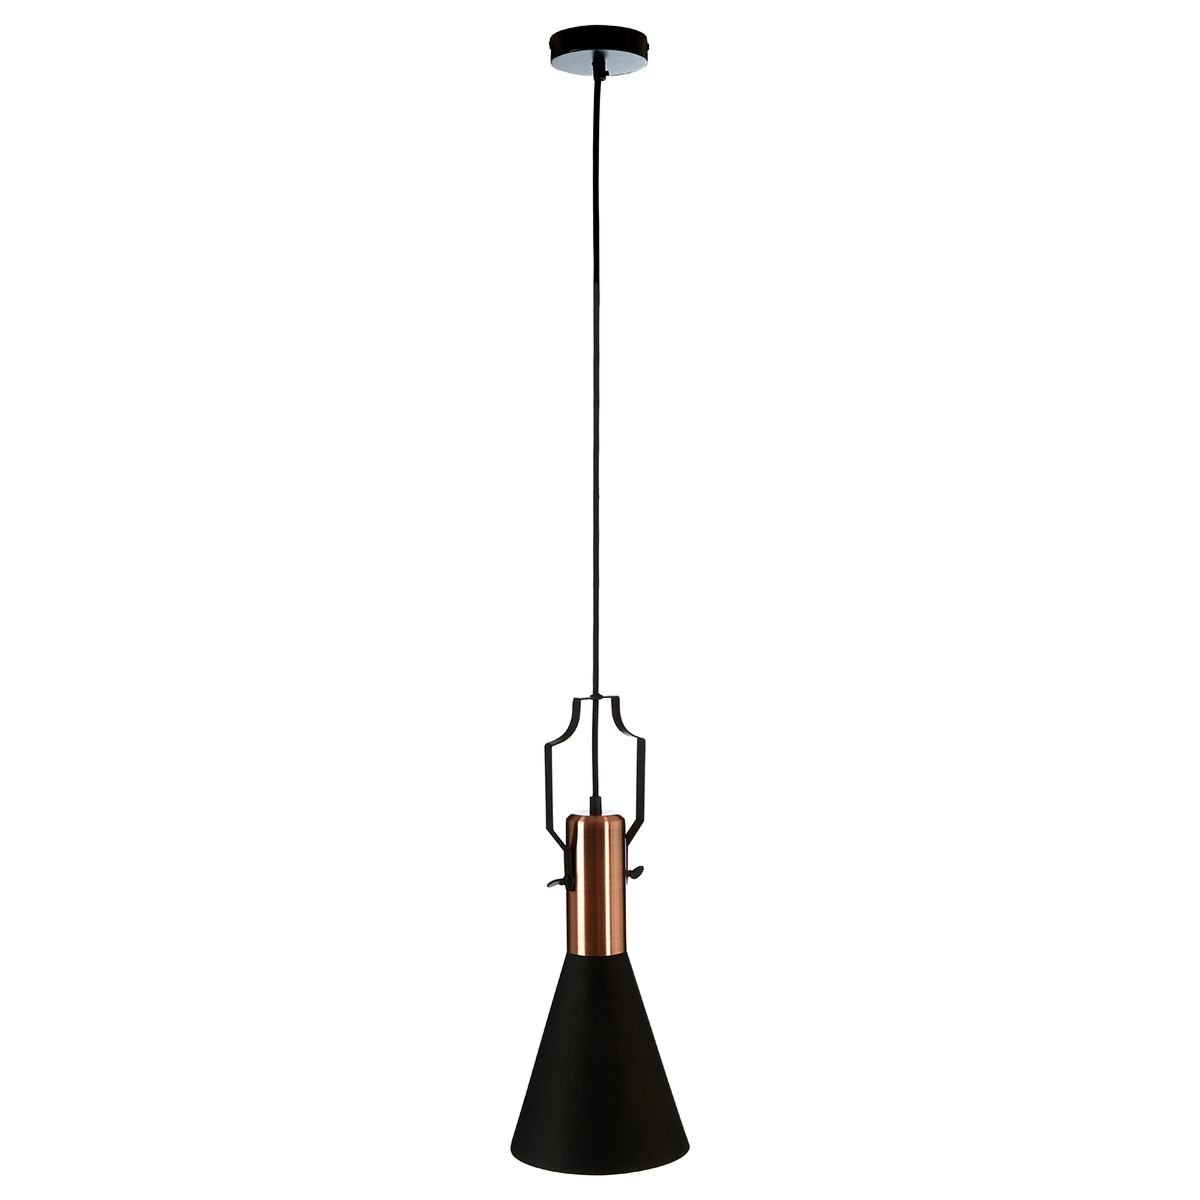 Premier Housewares Argo Small Pendant Lamp in Black/Brushed Copper